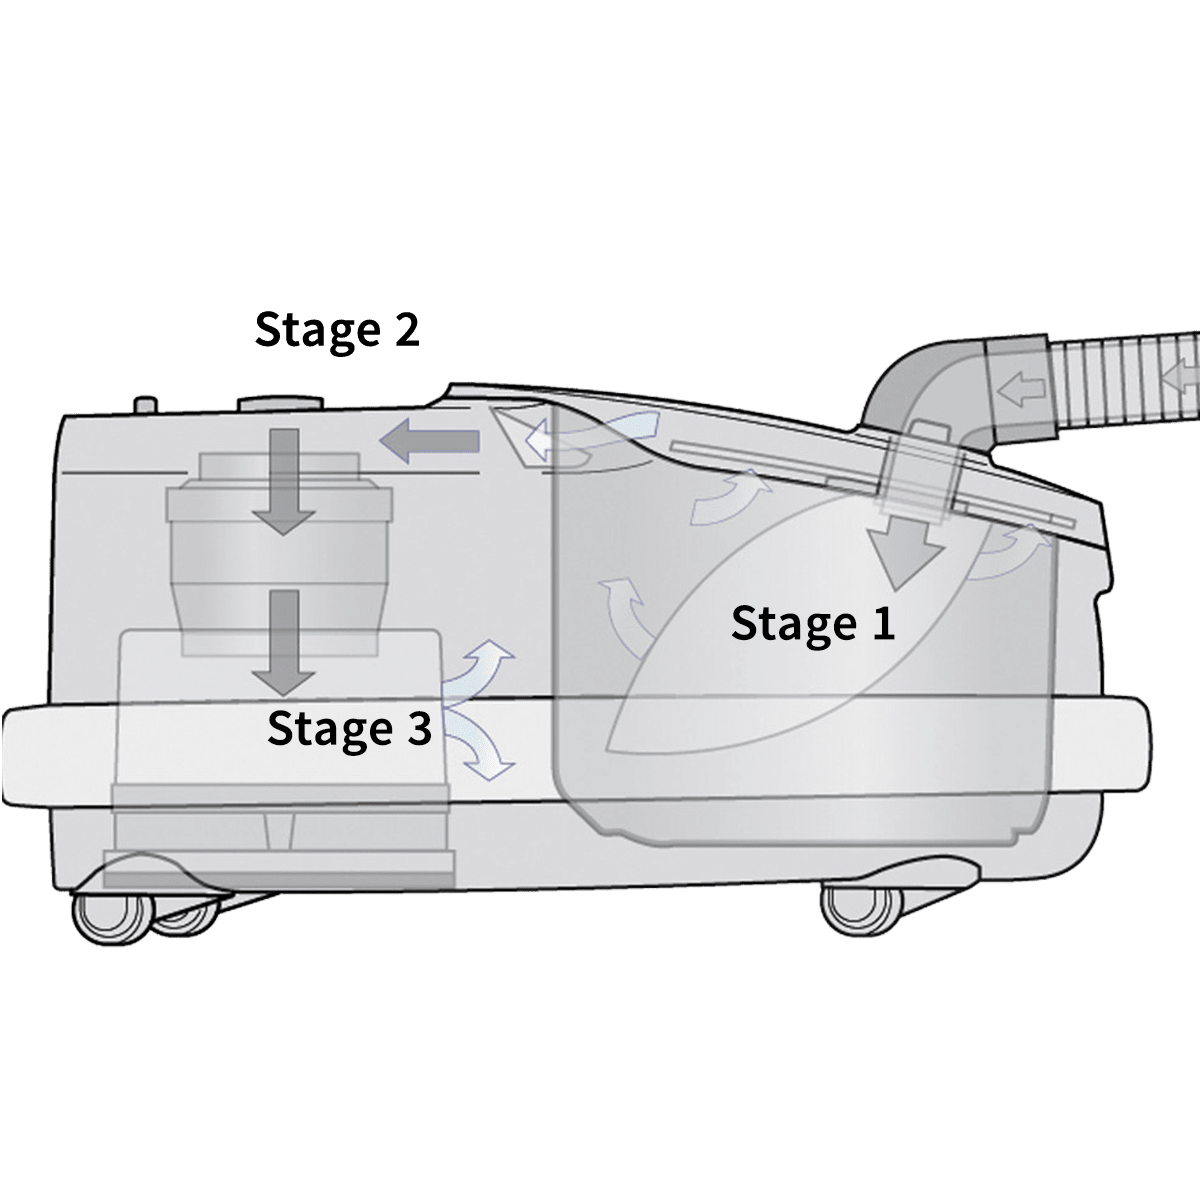 S-Class Filtration System